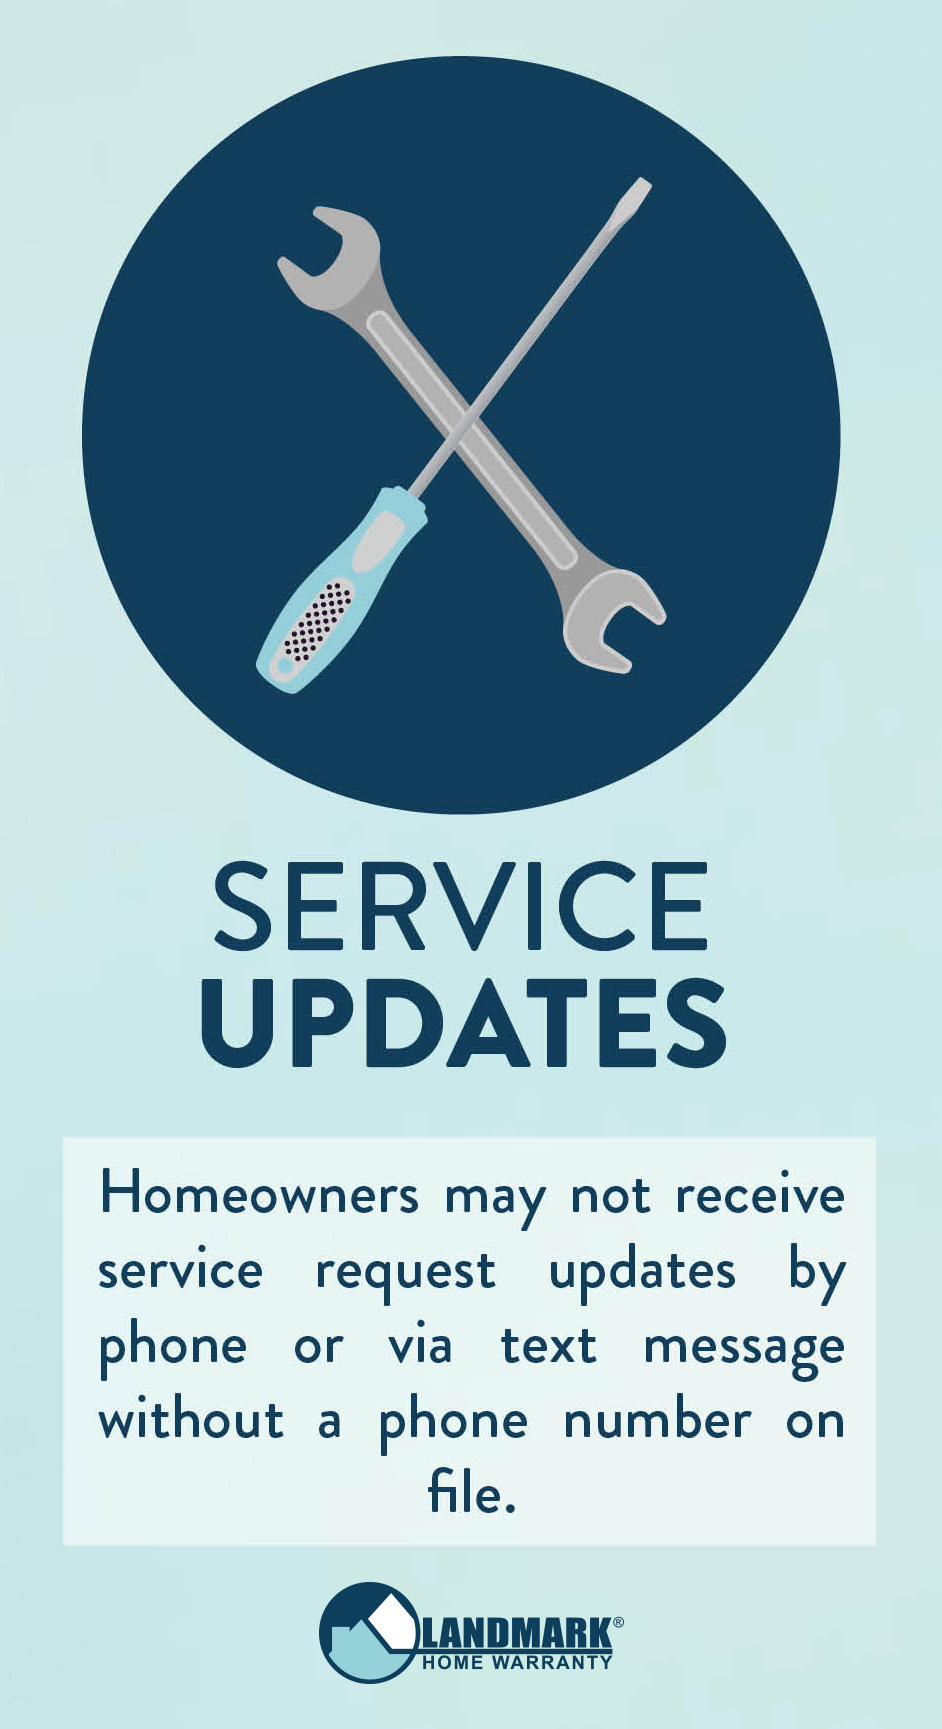 Without a phone number homeowners cannot get service request updates.